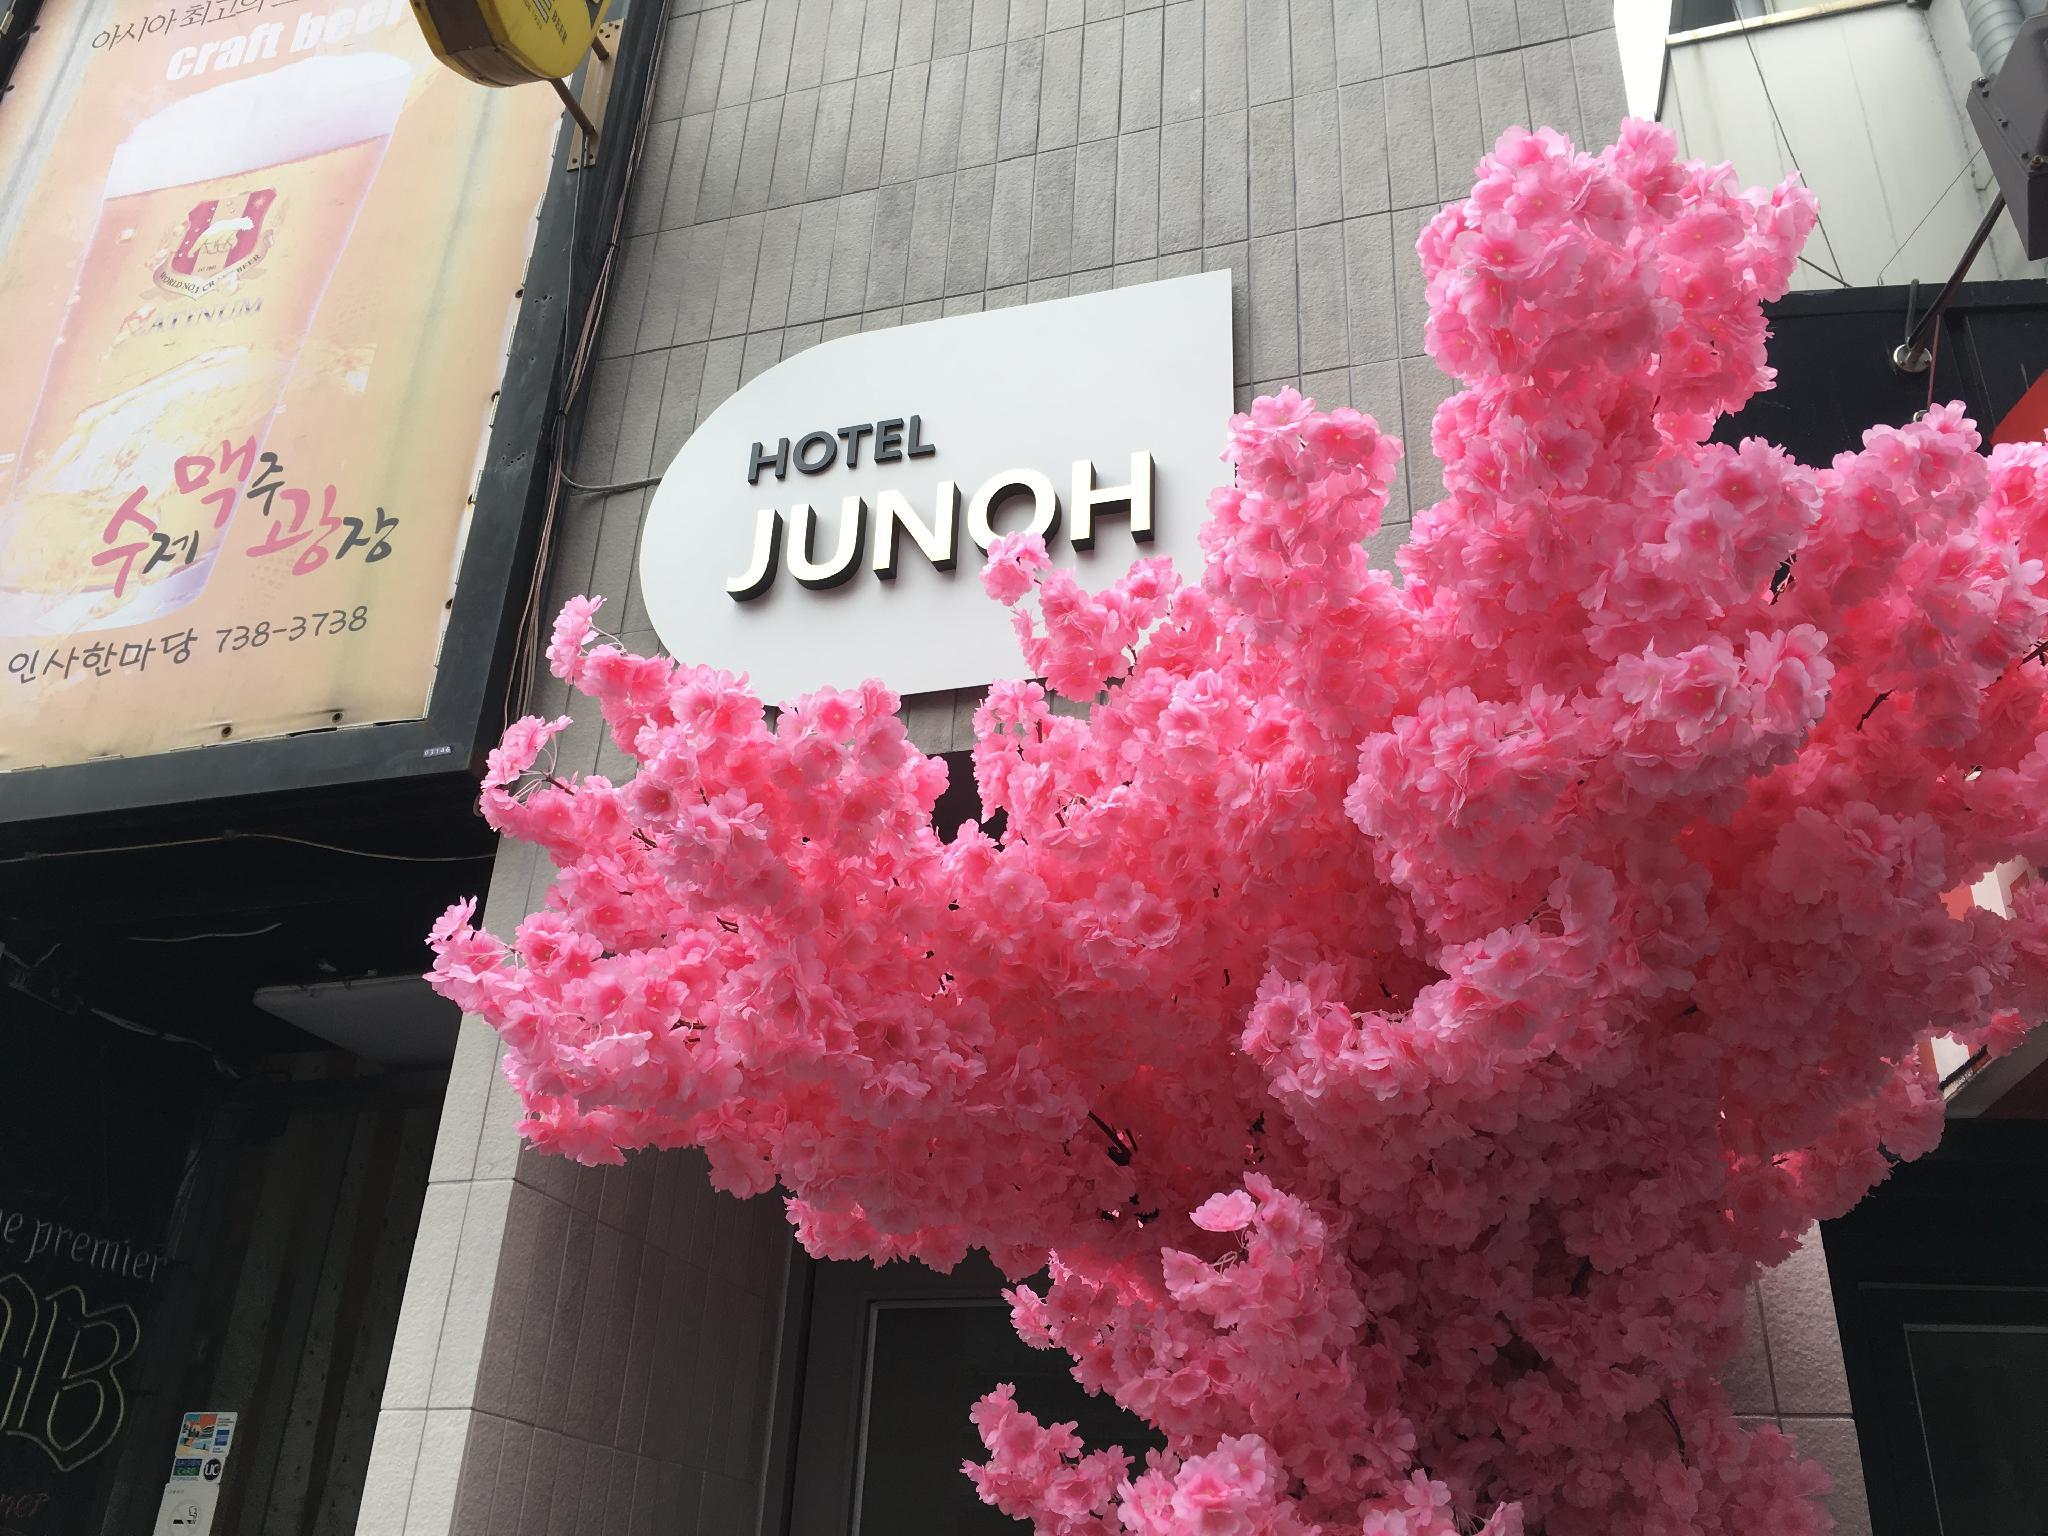 Junoh Hotel – Hotel Reviews, Photos & Room Rates